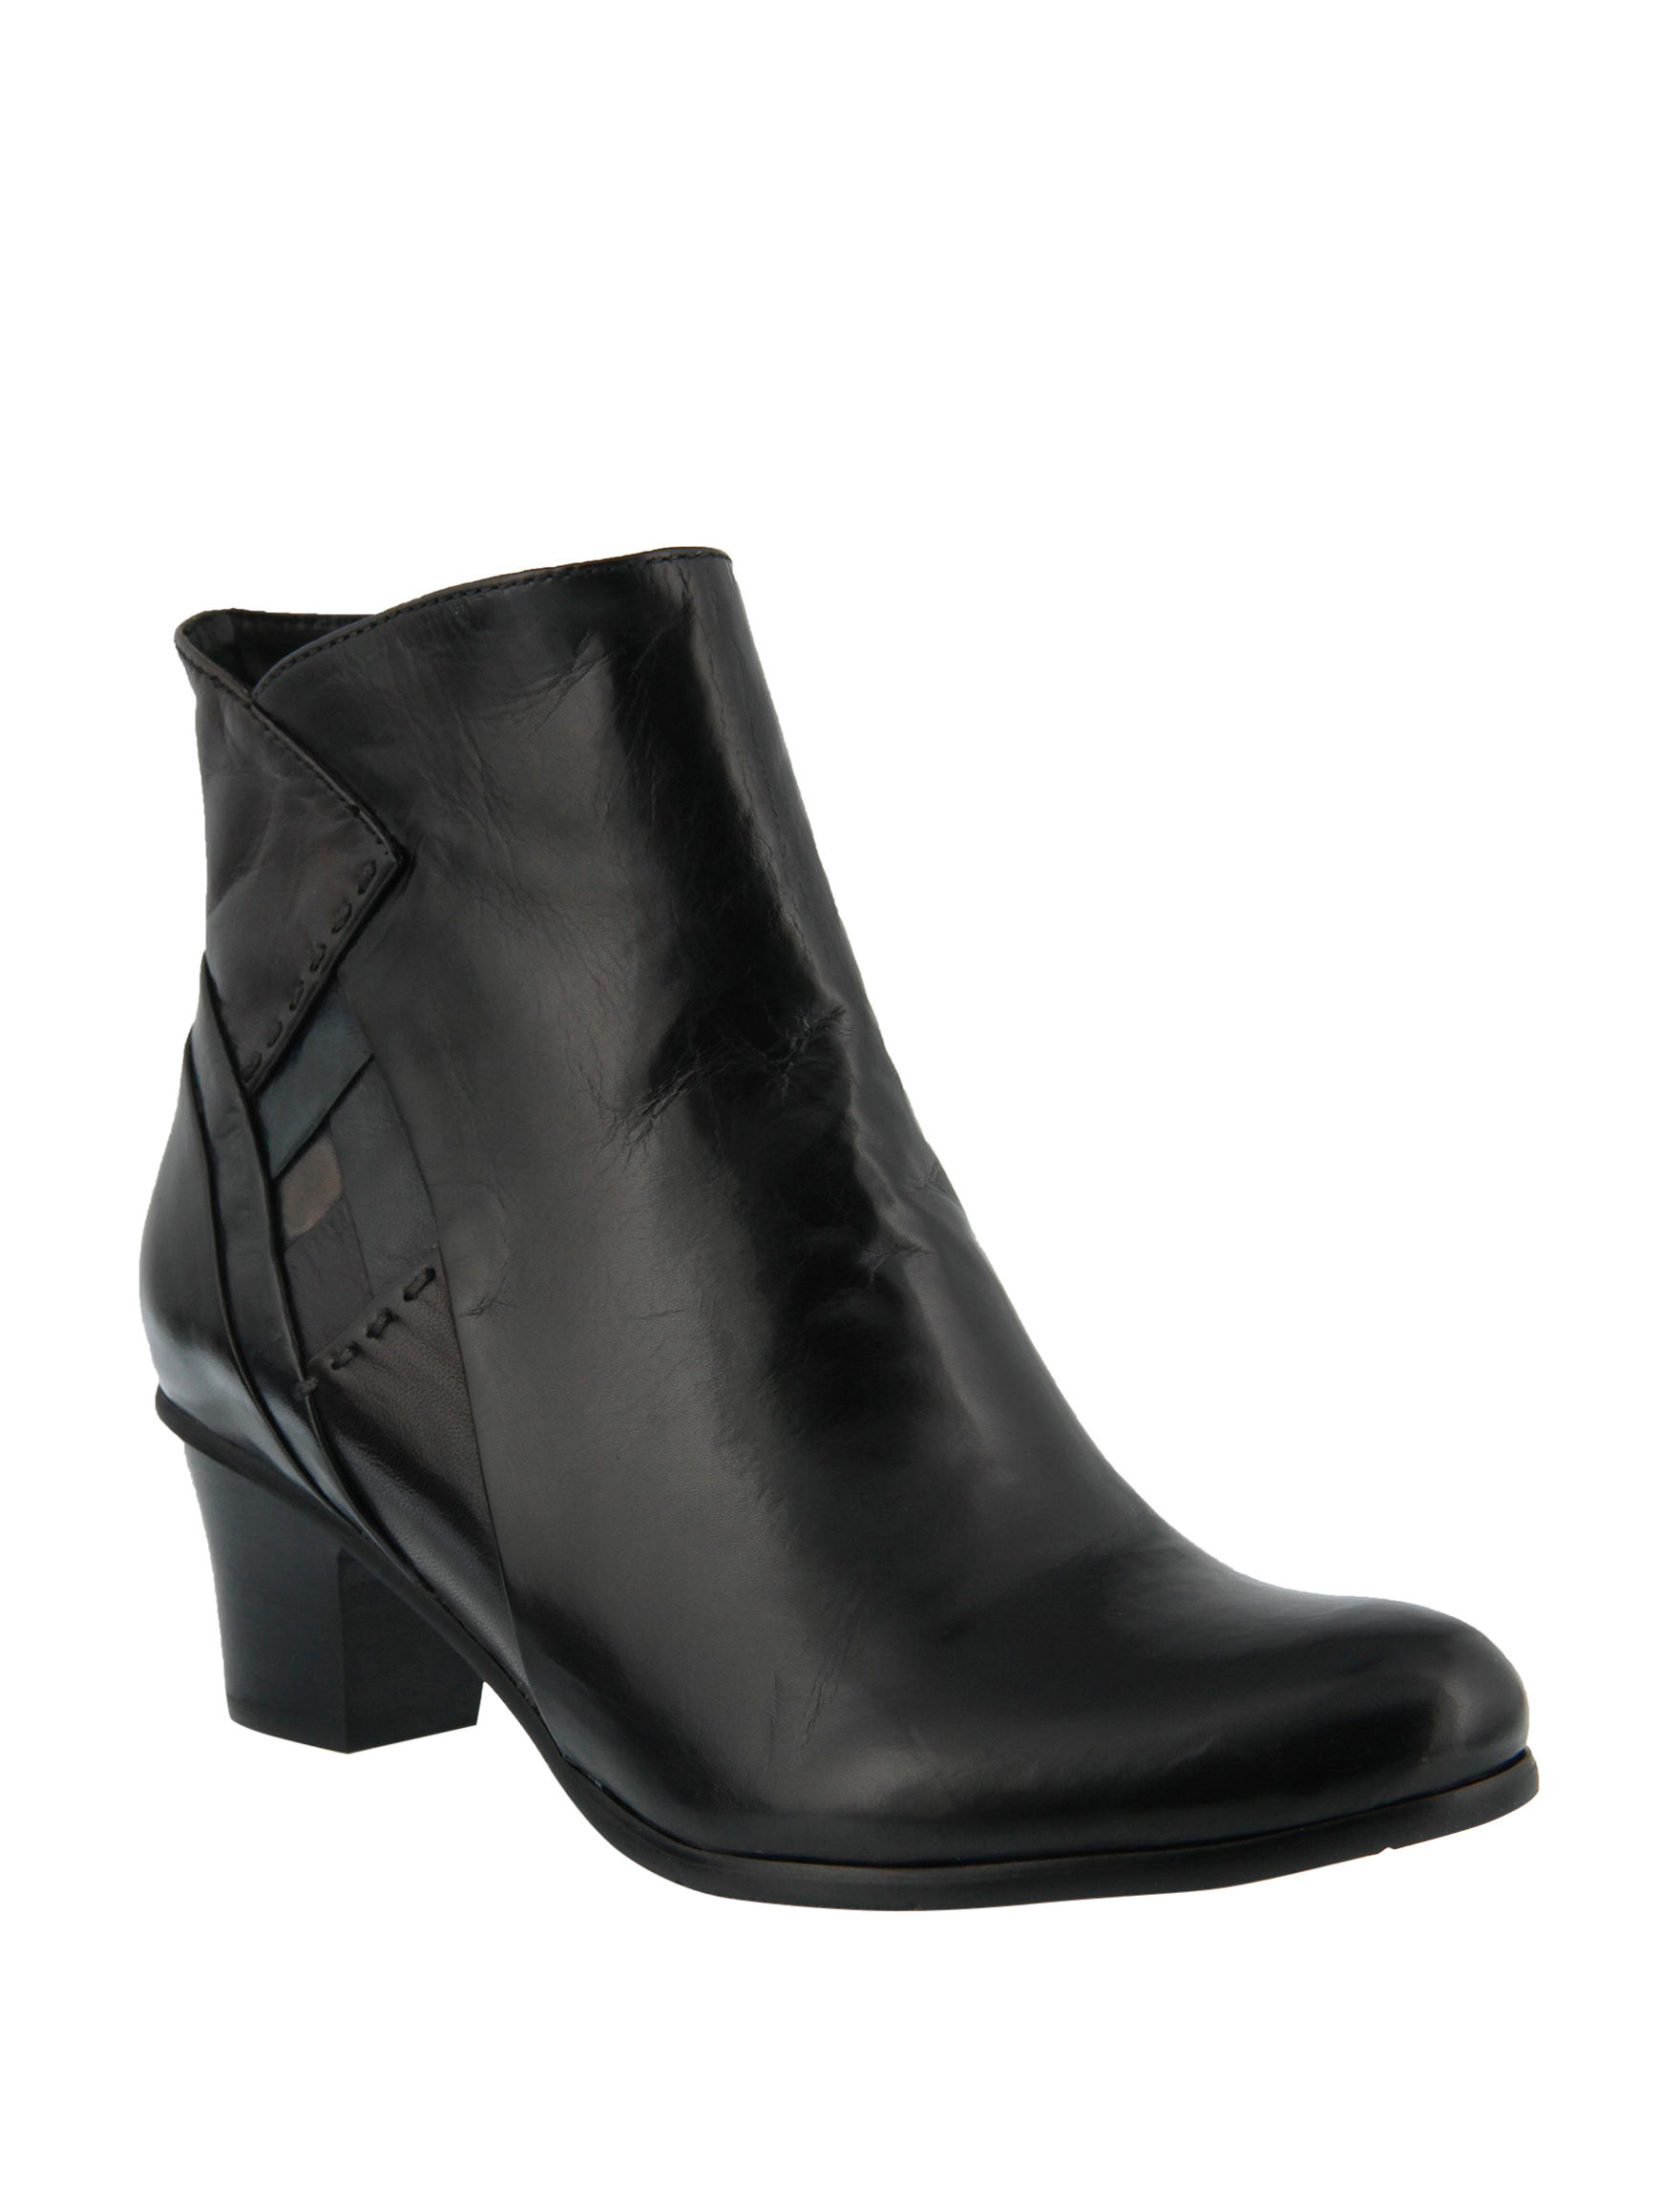 Spring Step Black Ankle Boots & Booties